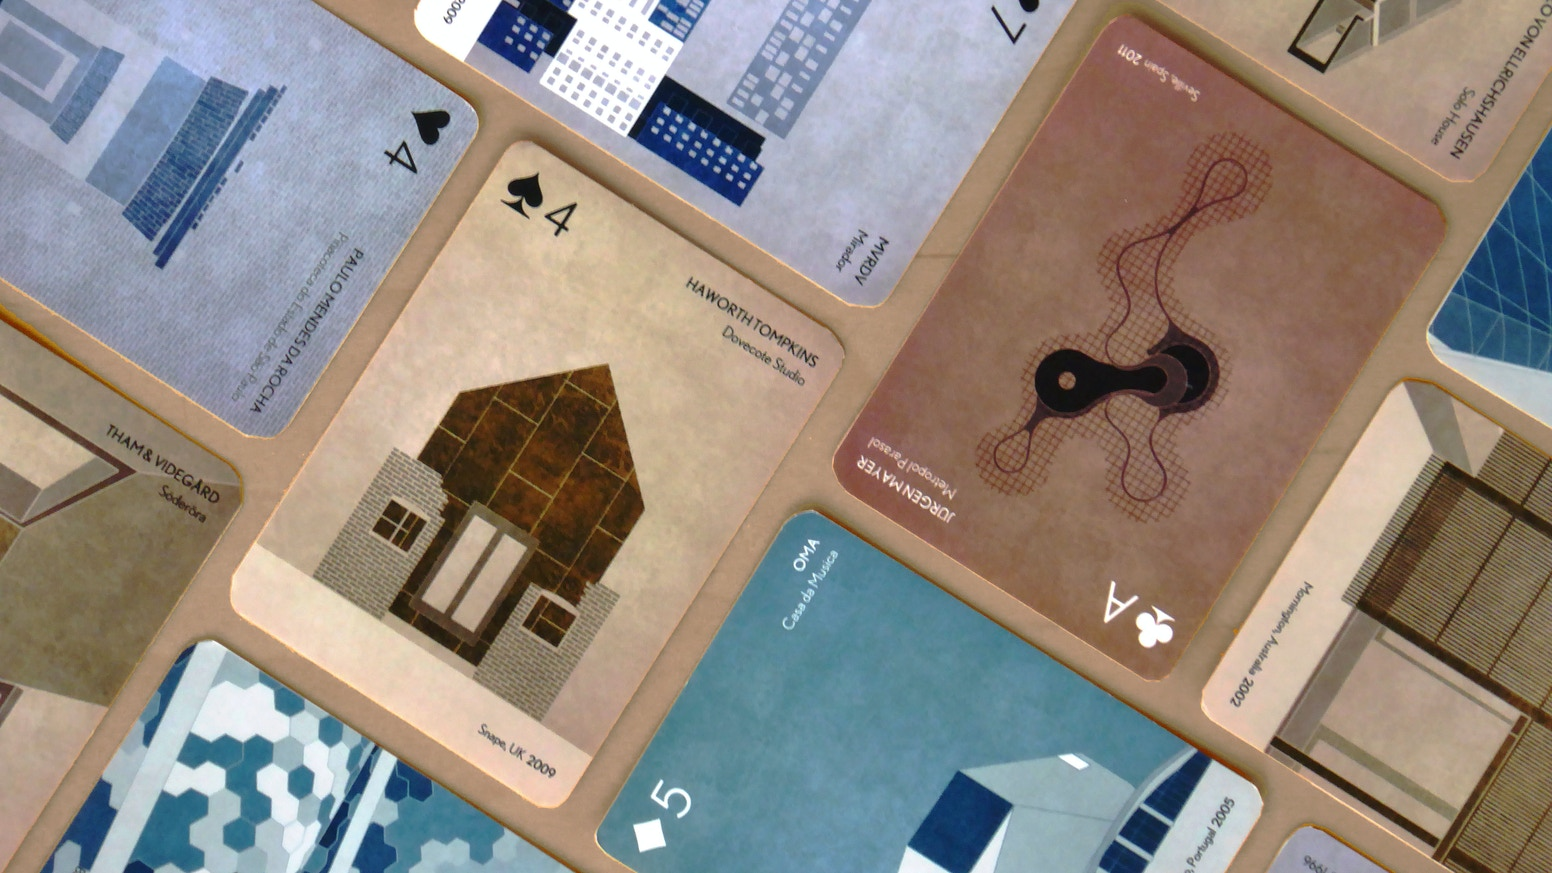 A standard deck of poker cards which provides an overview of several buildings of interest in the XXI century.